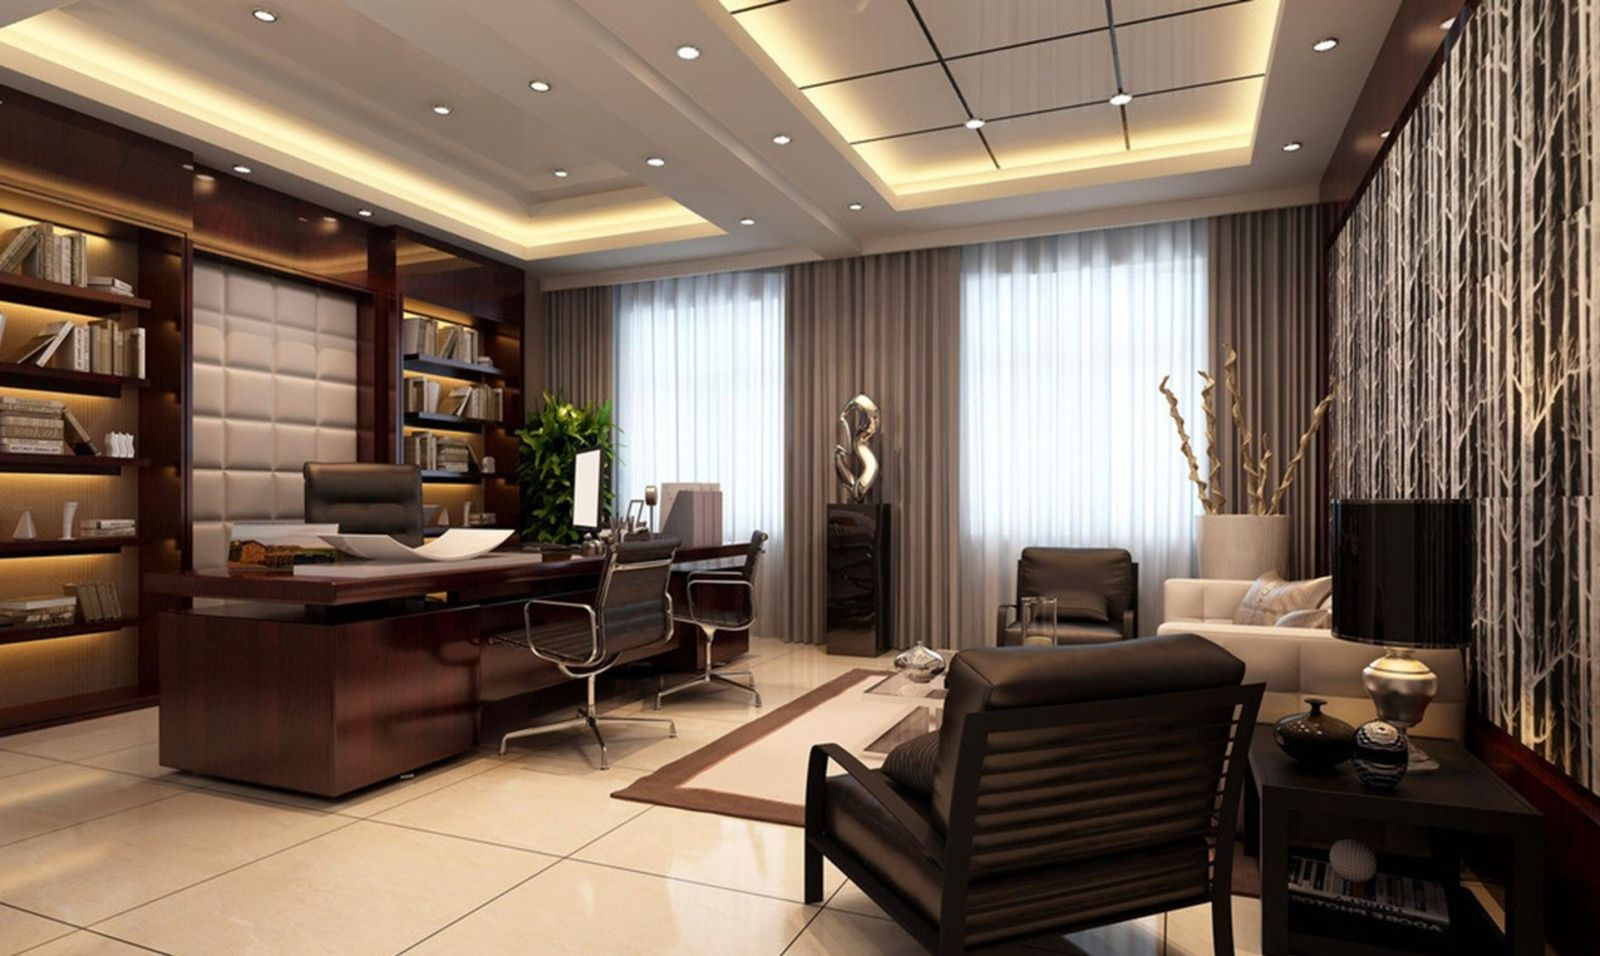 Interior Design Ideas For Home Office: Modern Executive Office Interior Design